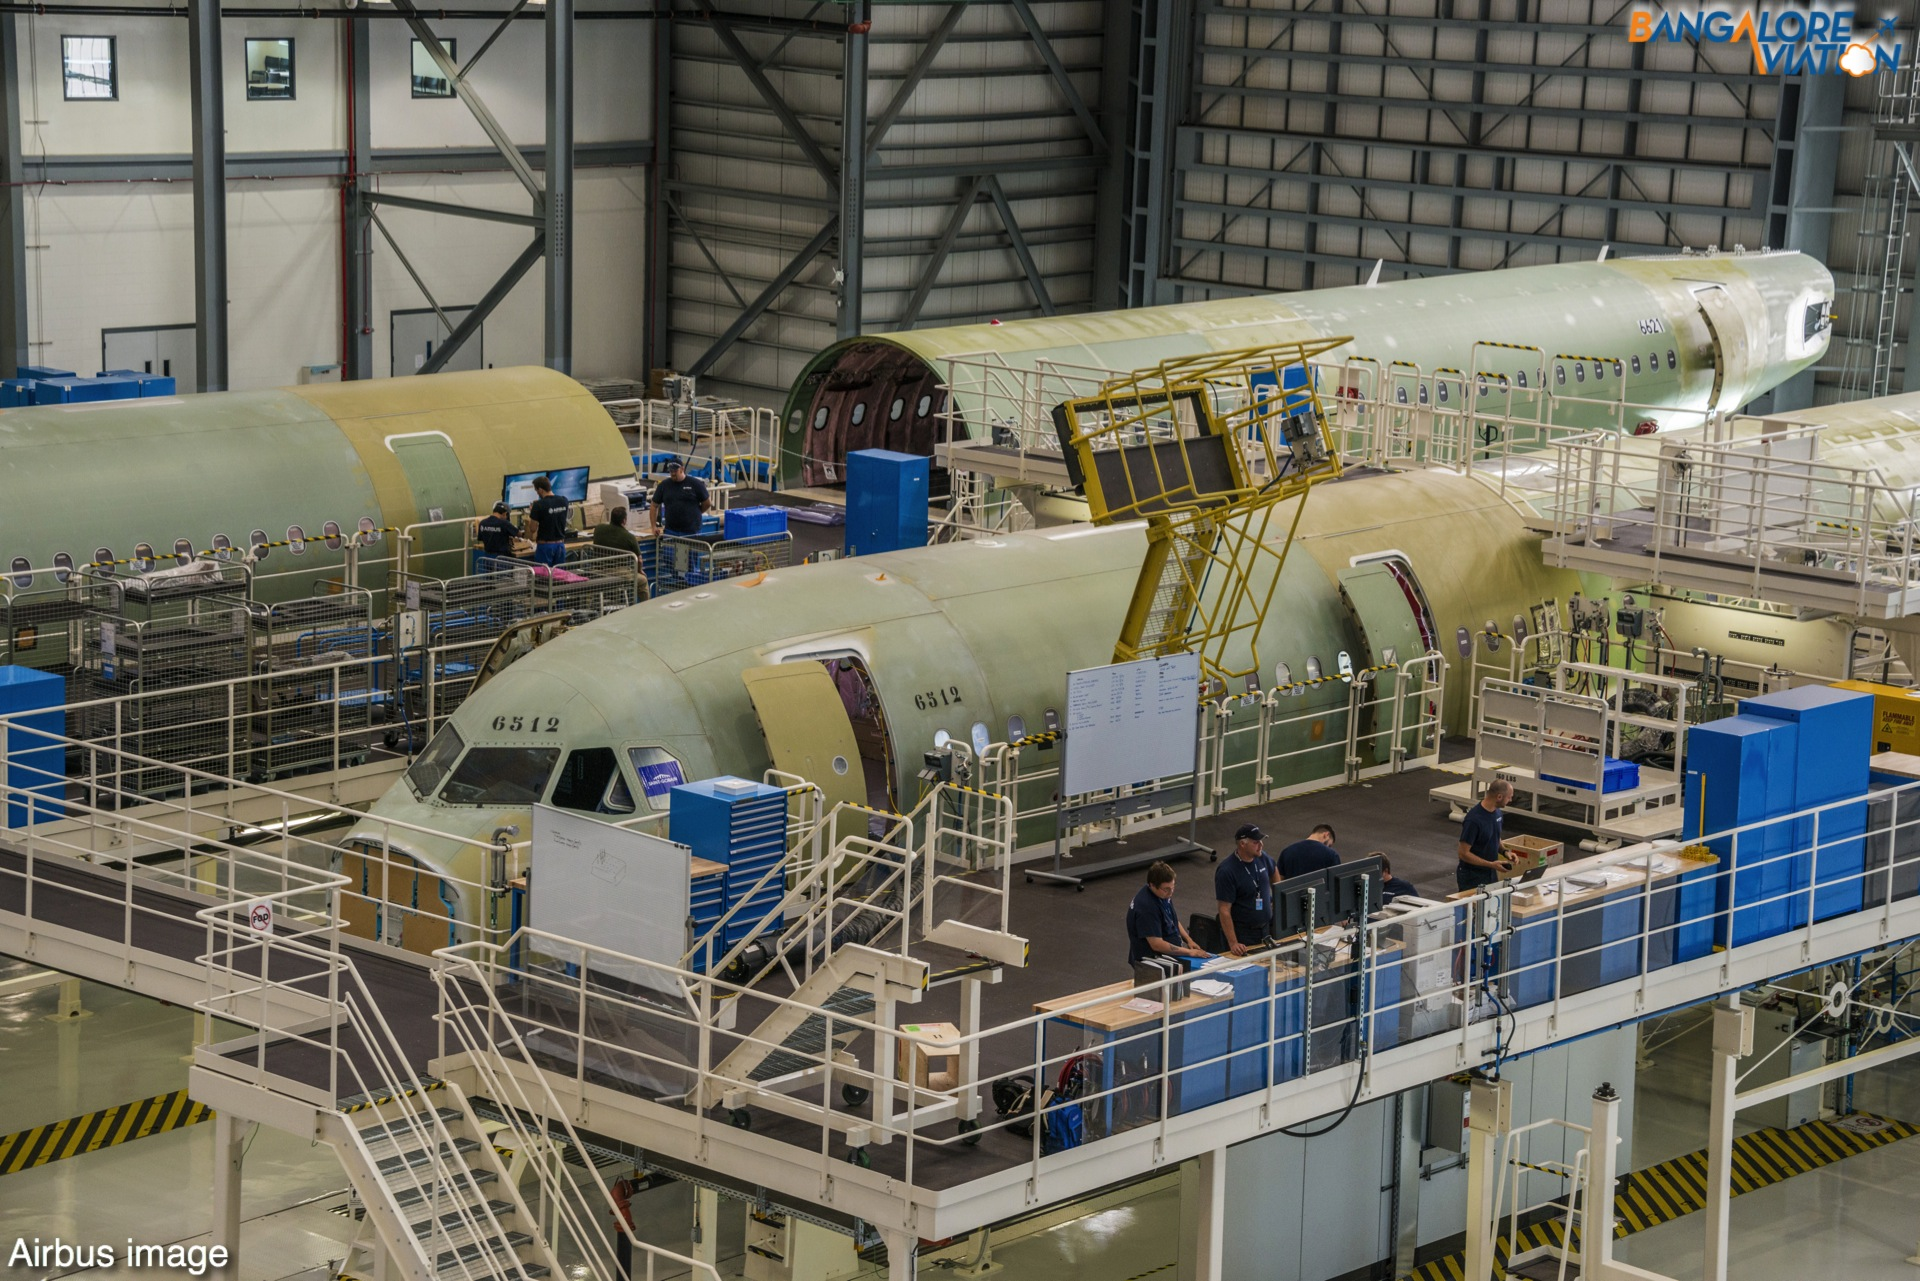 MSN6512 and MSN6621 in assembly at Airbus U.S. Manufacturing Facility. Airbus image.